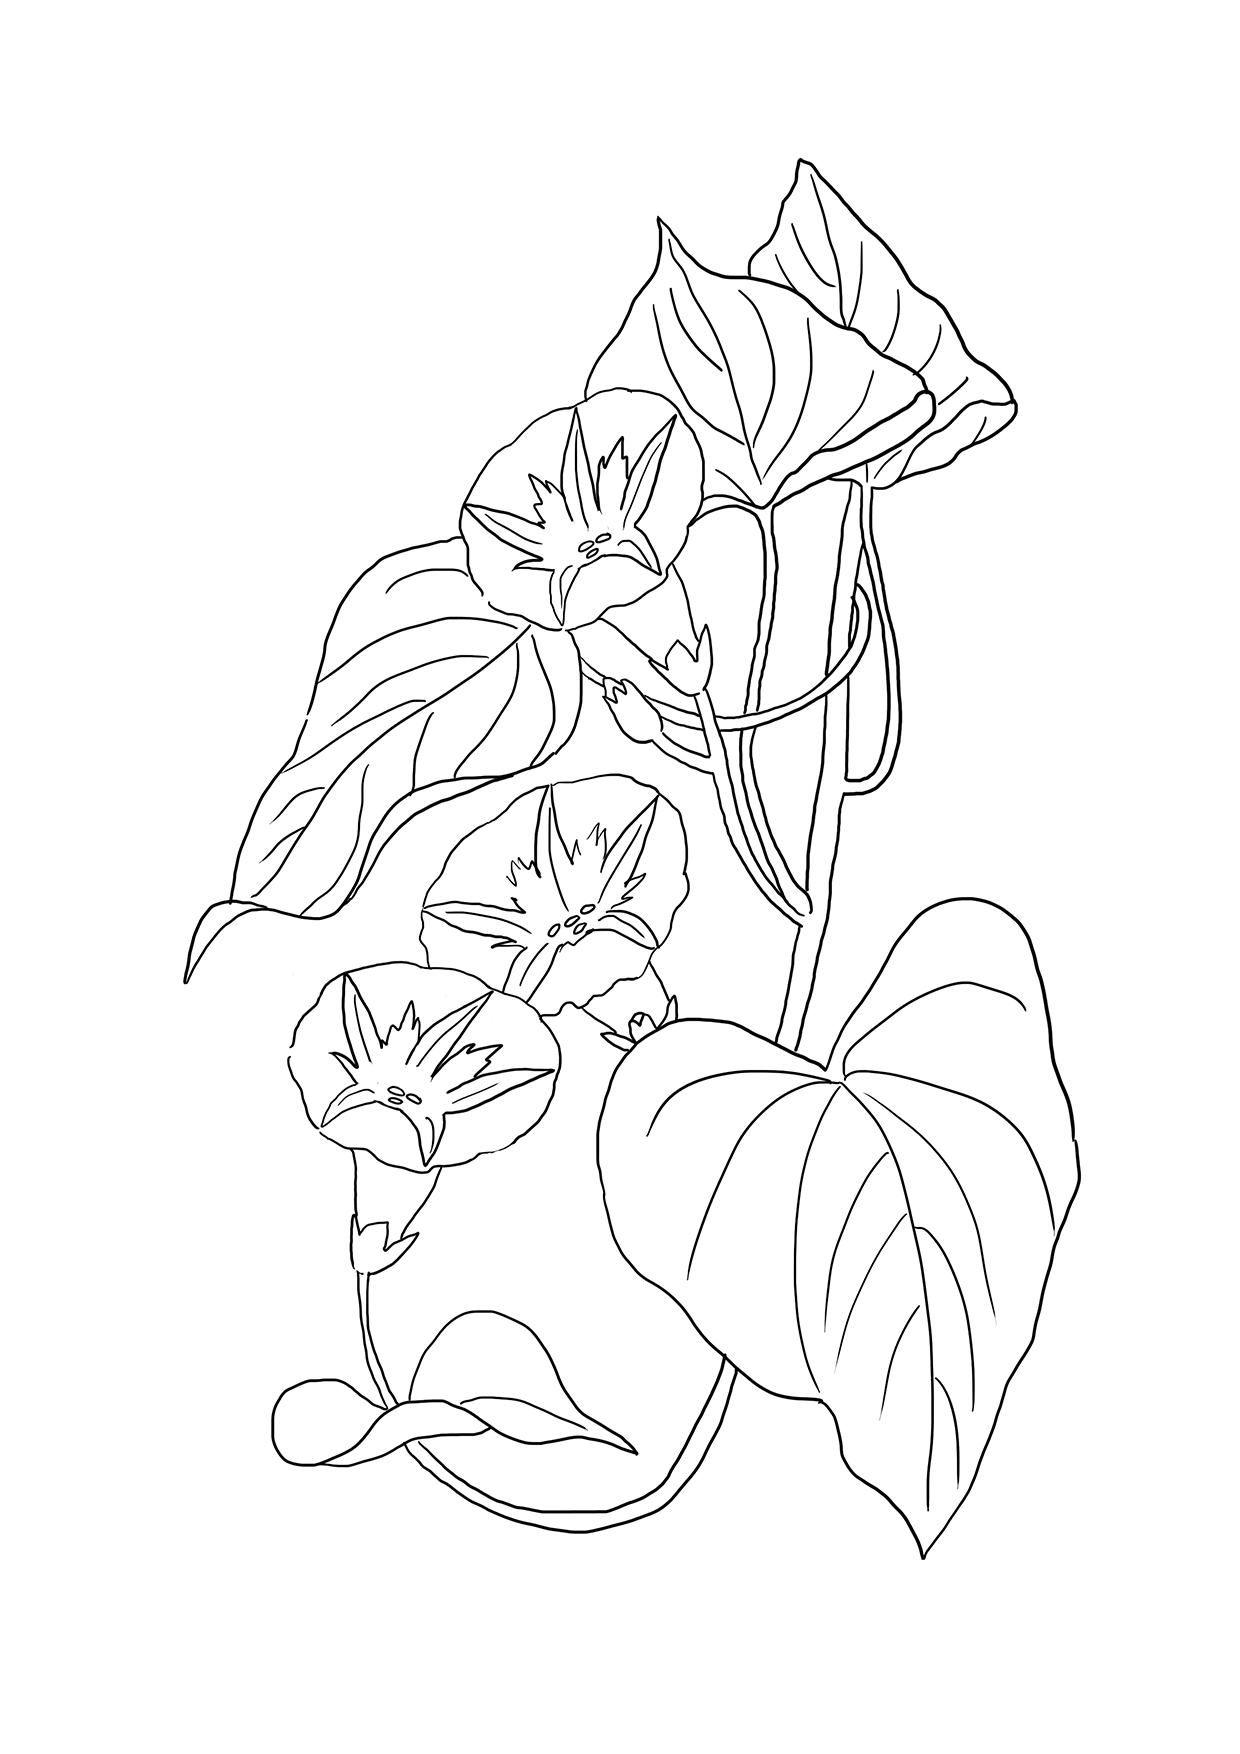 bindweed-coloring-page